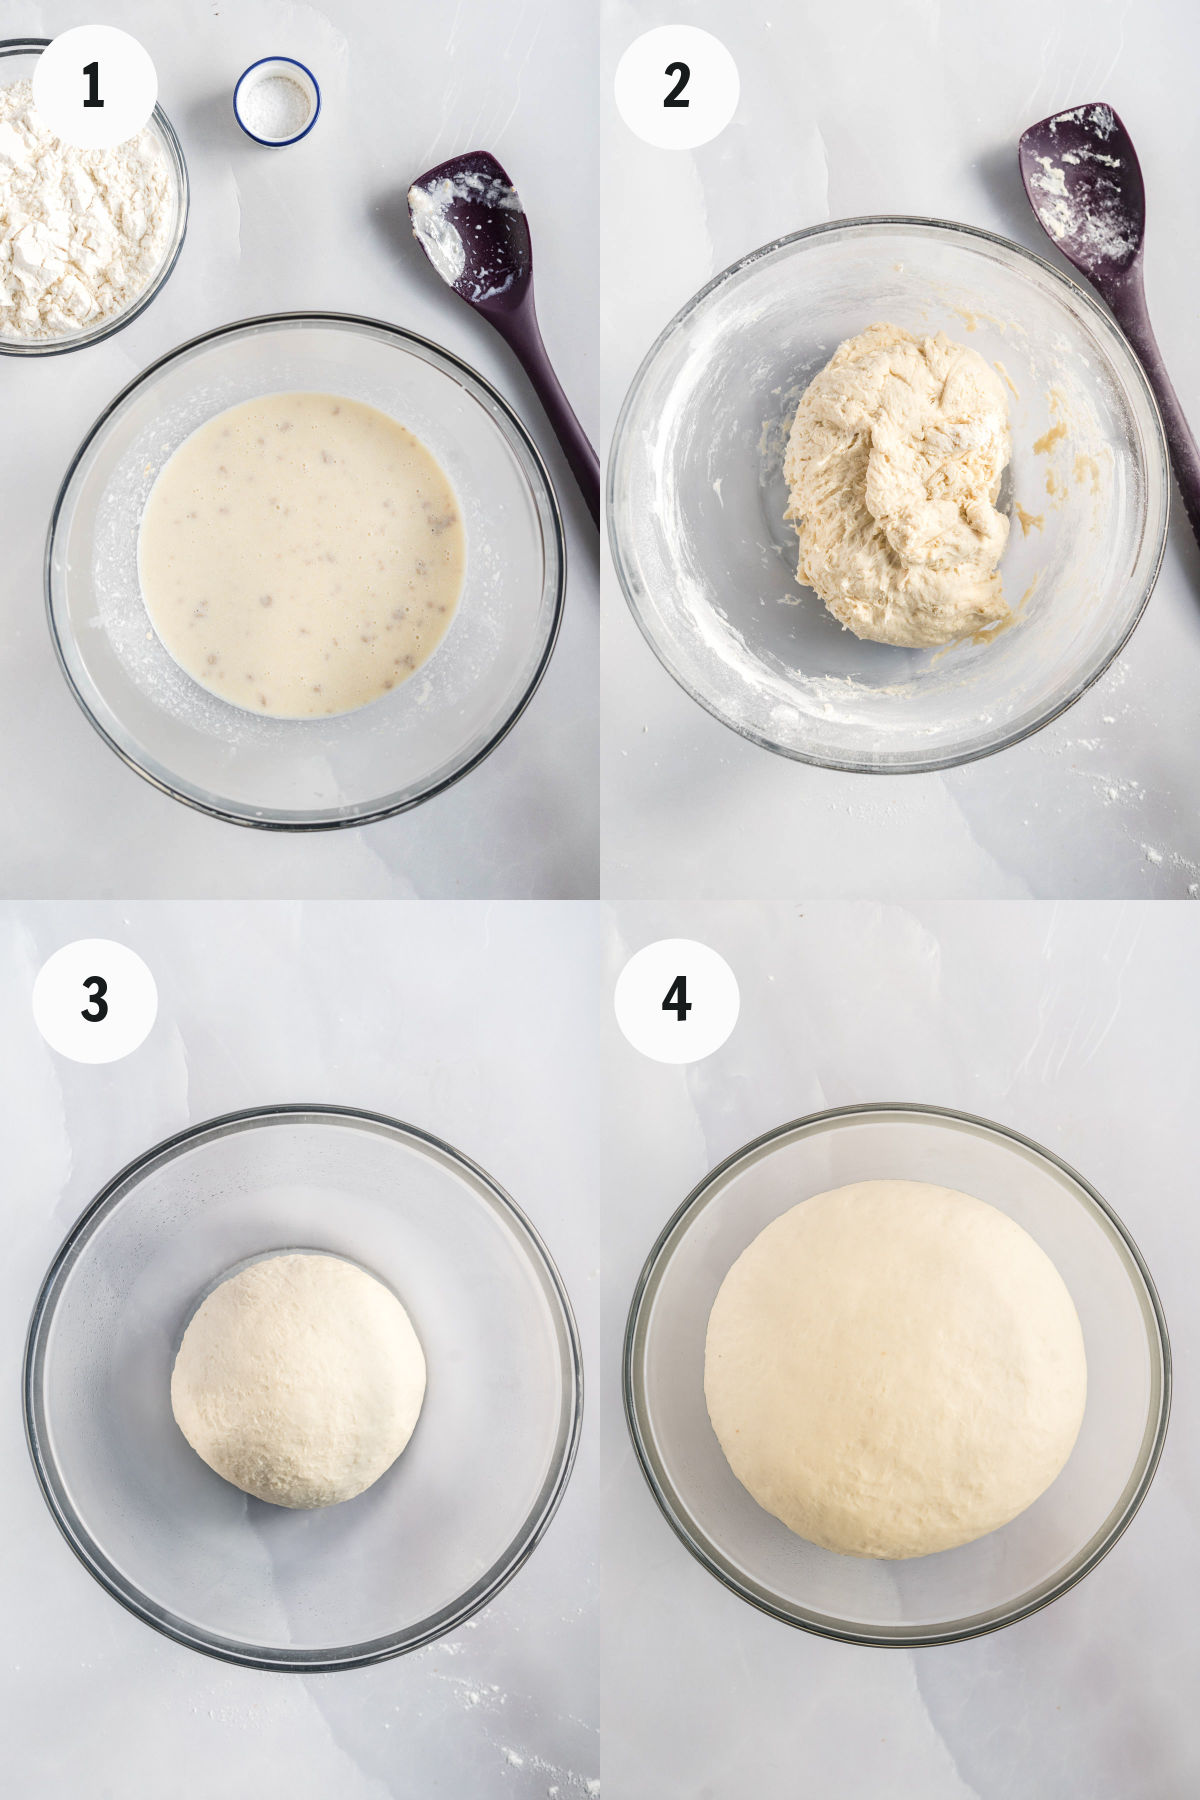 Process of mixing and rising dough.